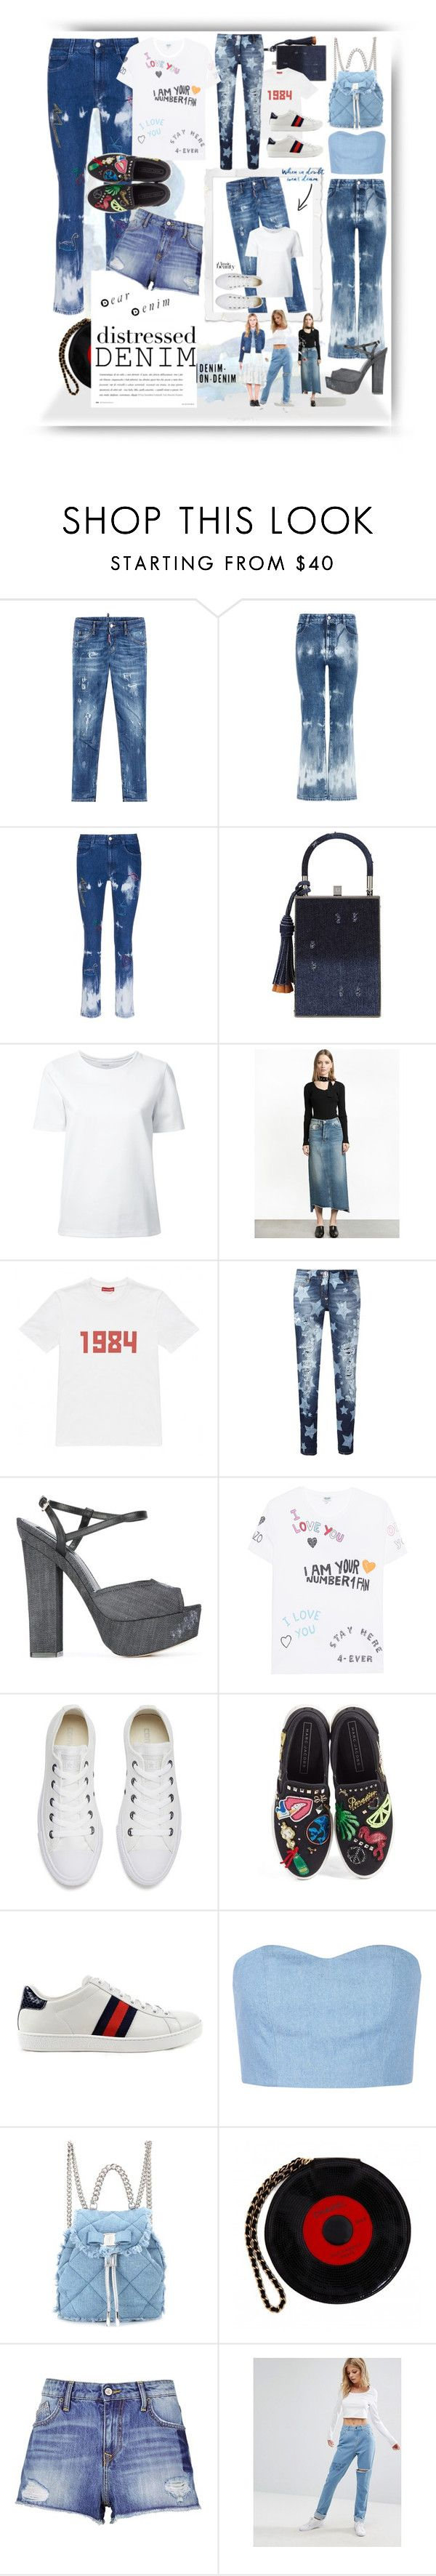 """Distressed Denim & Basics"" by alrdesign ❤ liked on Polyvore featuring Dsquared2, STELLA McCARTNEY, Jill Haber, Lemaire, Gosha Rubchinskiy, Philipp Plein, Kenzo, Converse, Marc Jacobs and Gucci"